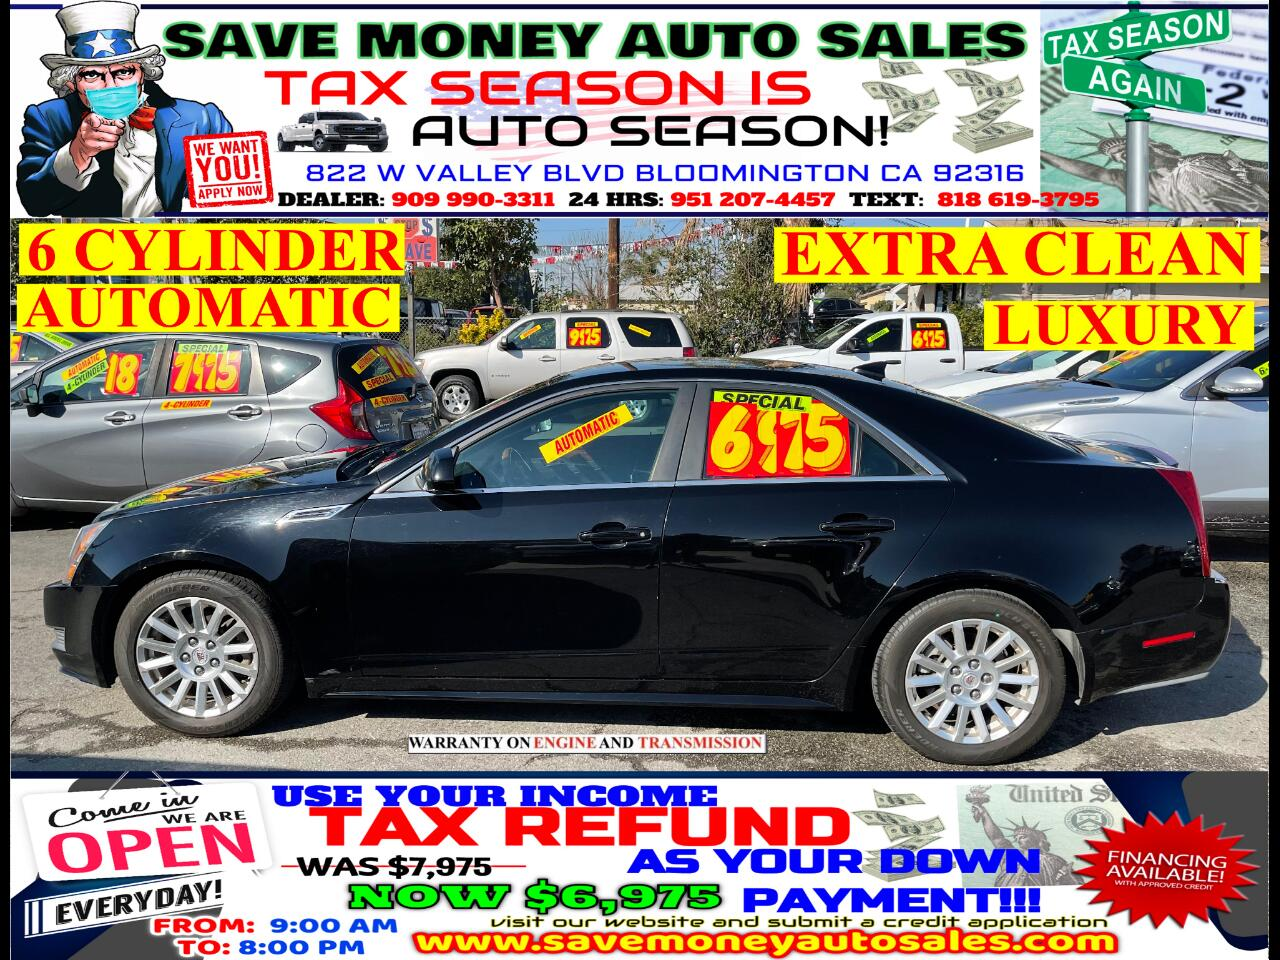 Used Cadillac Cts Sedan Bloomington Ca